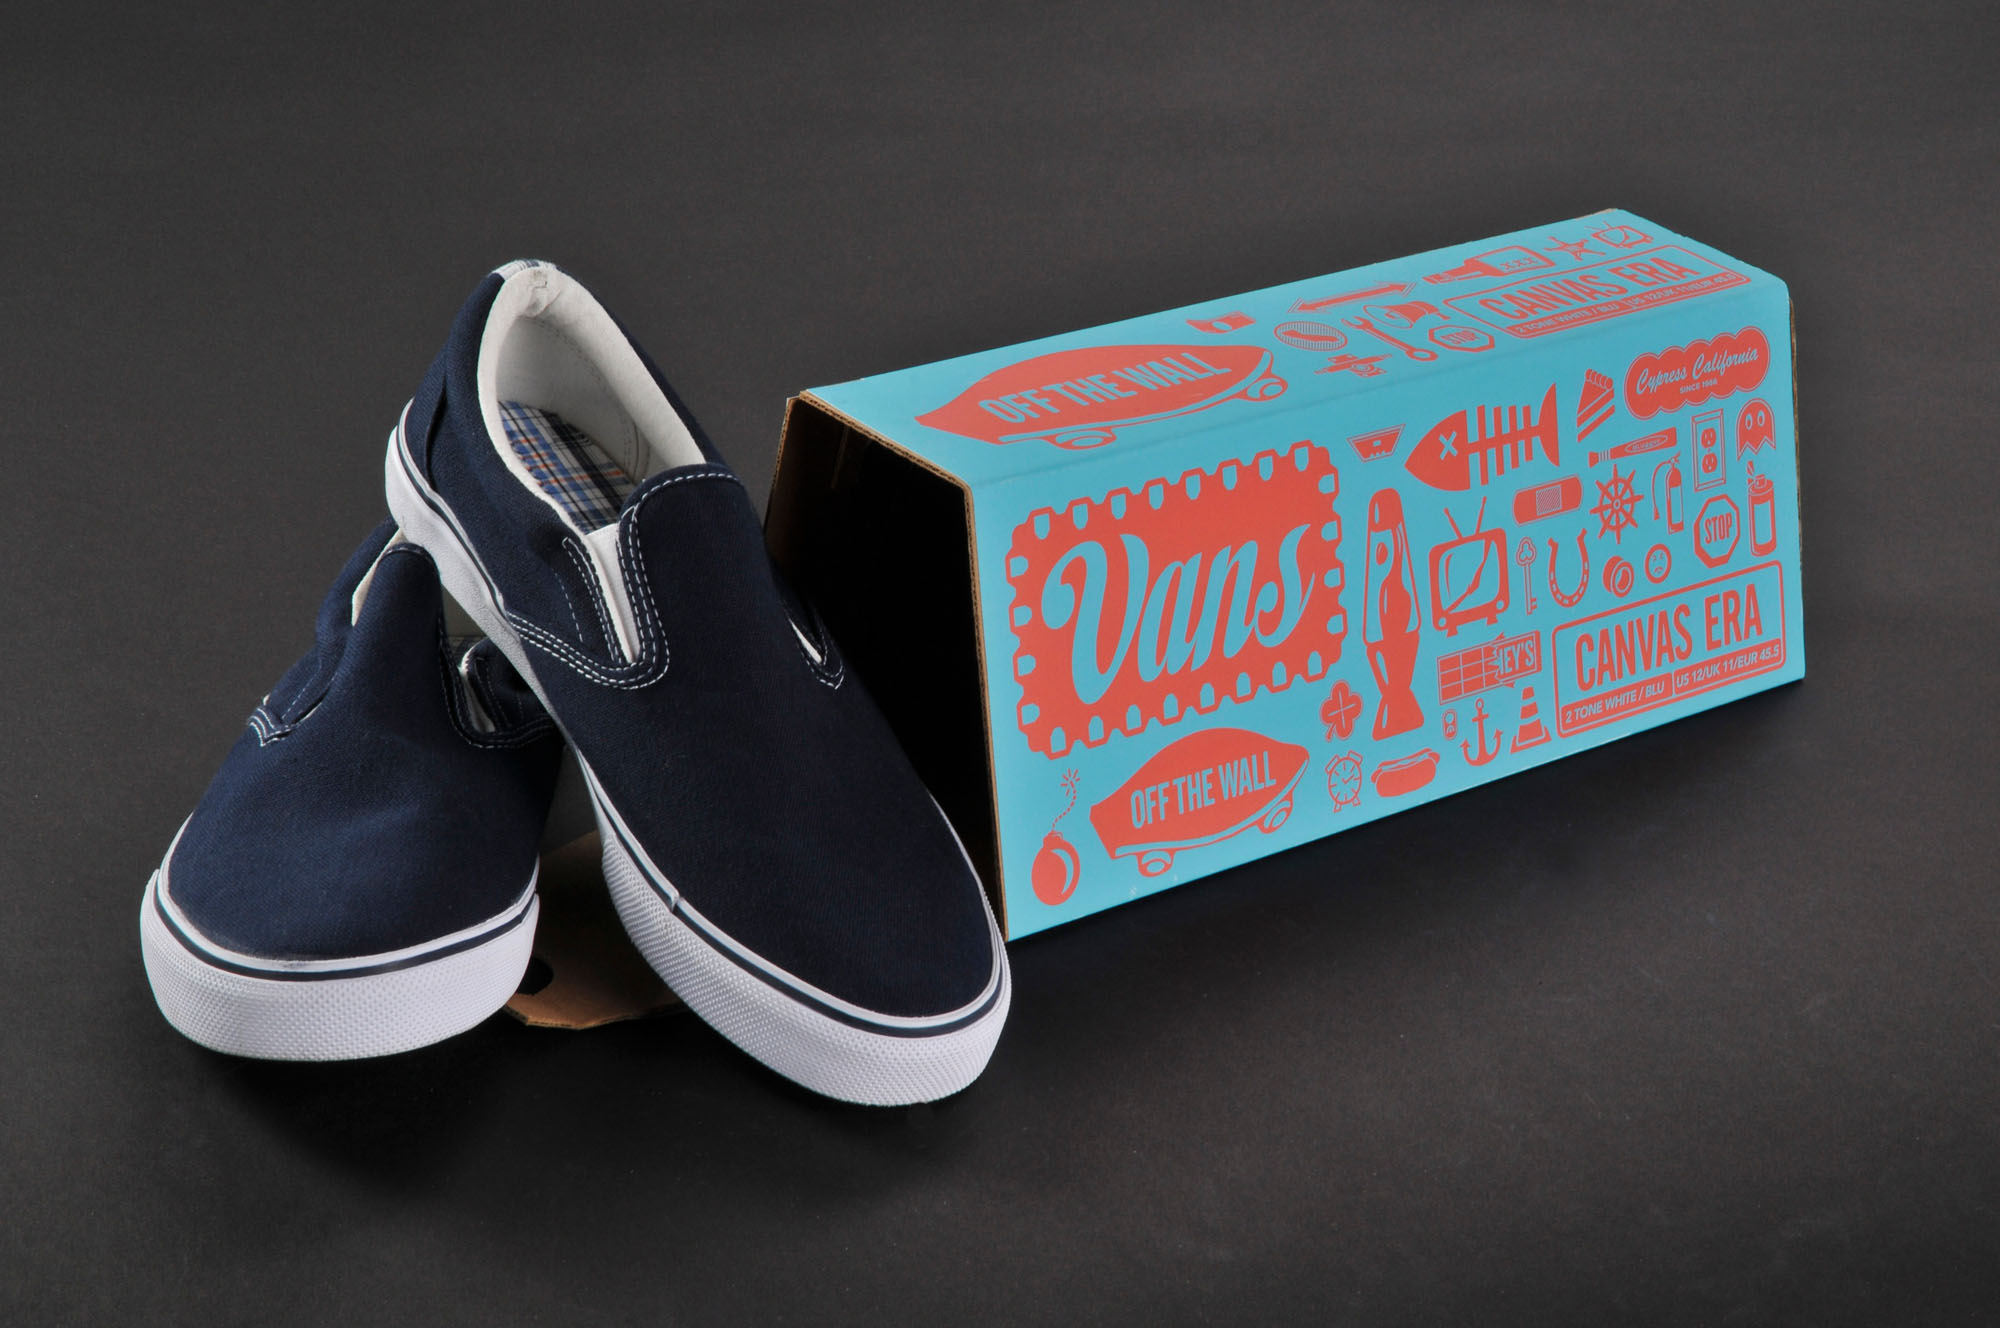 Vans Shoeboxes by Nate Eul